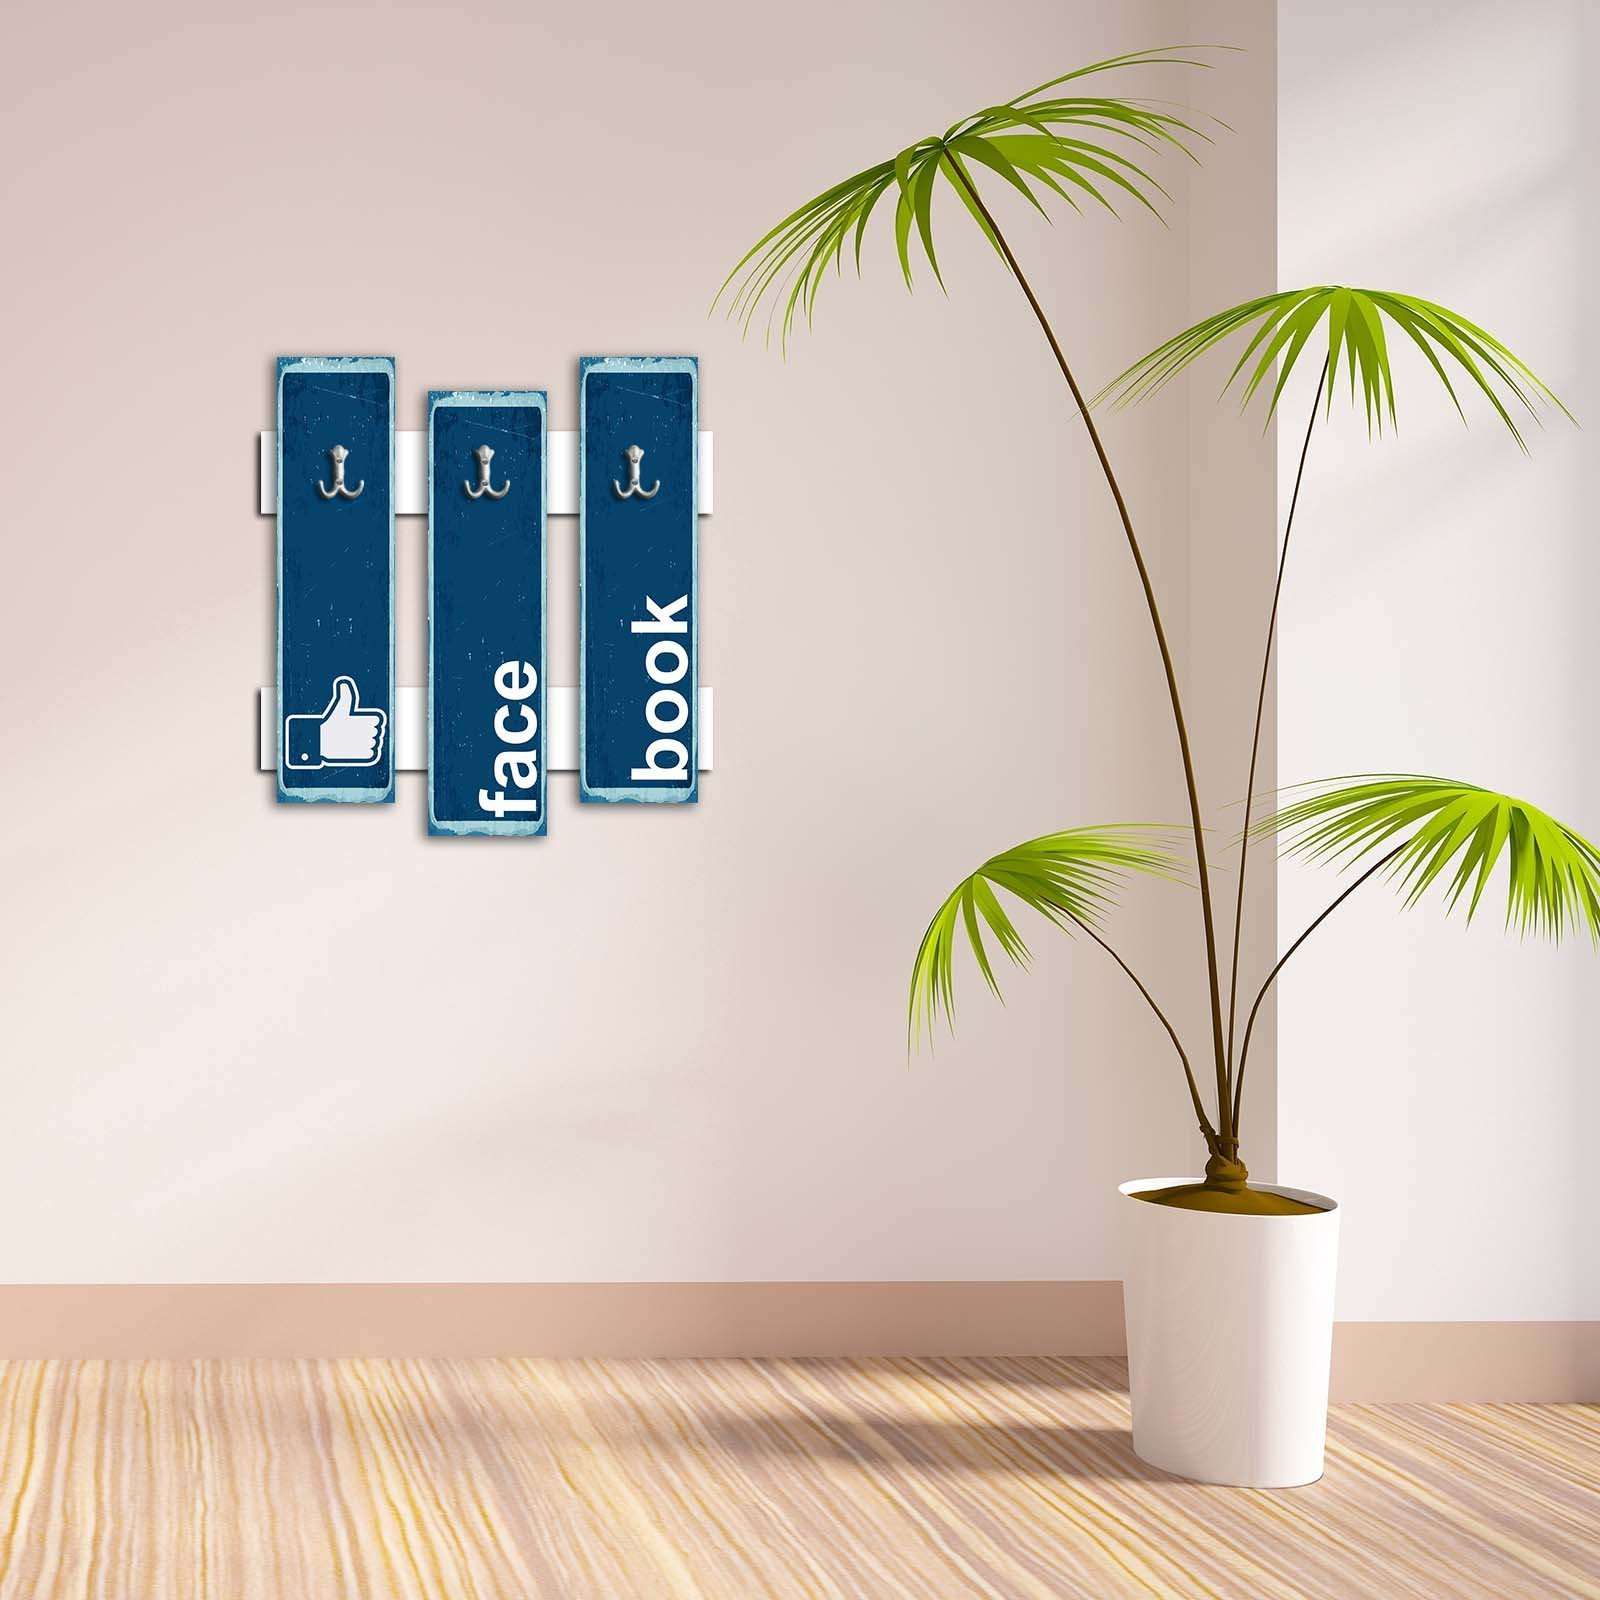 Decorative Wall Hook 3 Pcs Metal Key Holder 100% MDF Mounted Hanging Home Decor, Perfect for Foyers Entryway, Door Coats Hats Towels Scarfs Bags Like Facebook Social Media Emoji Blue Background